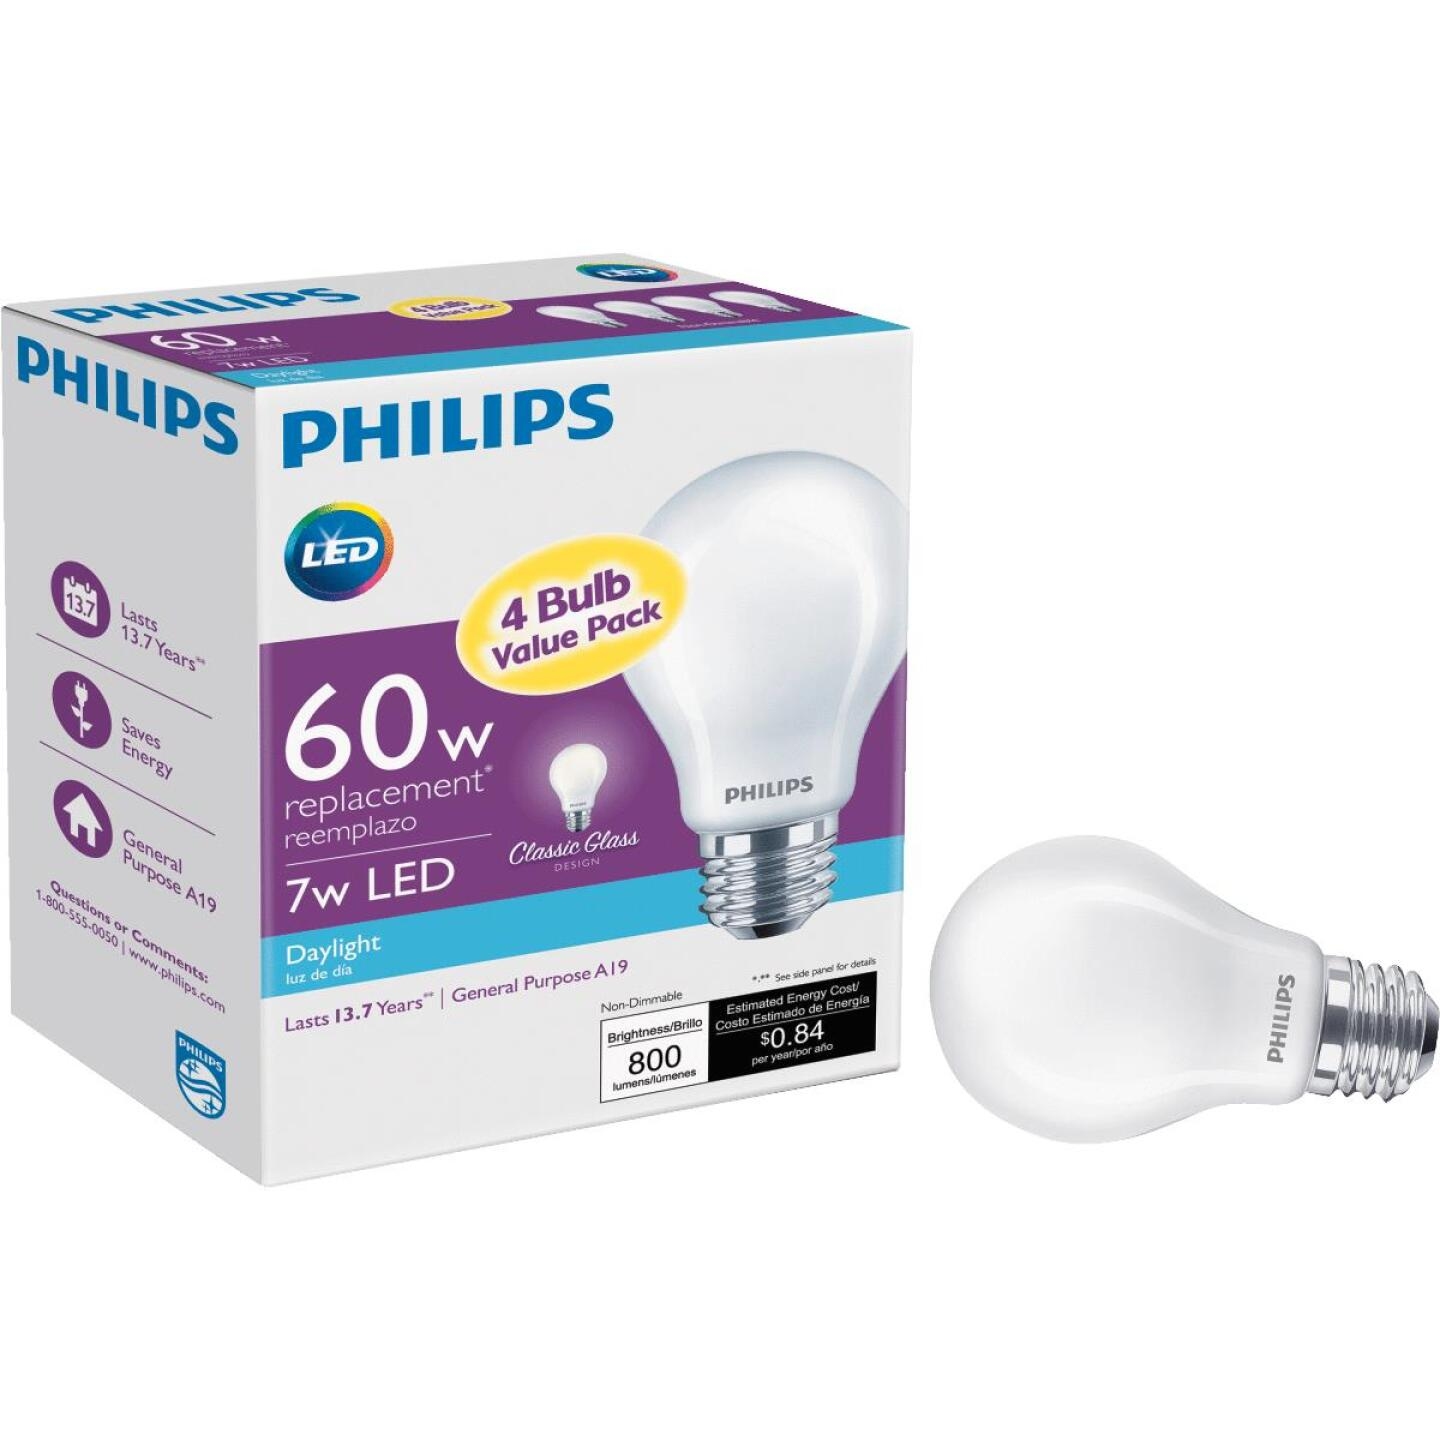 Philips 60W Equivalent Daylight A19 Medium LED Light Bulb (4-Pack) Image 1